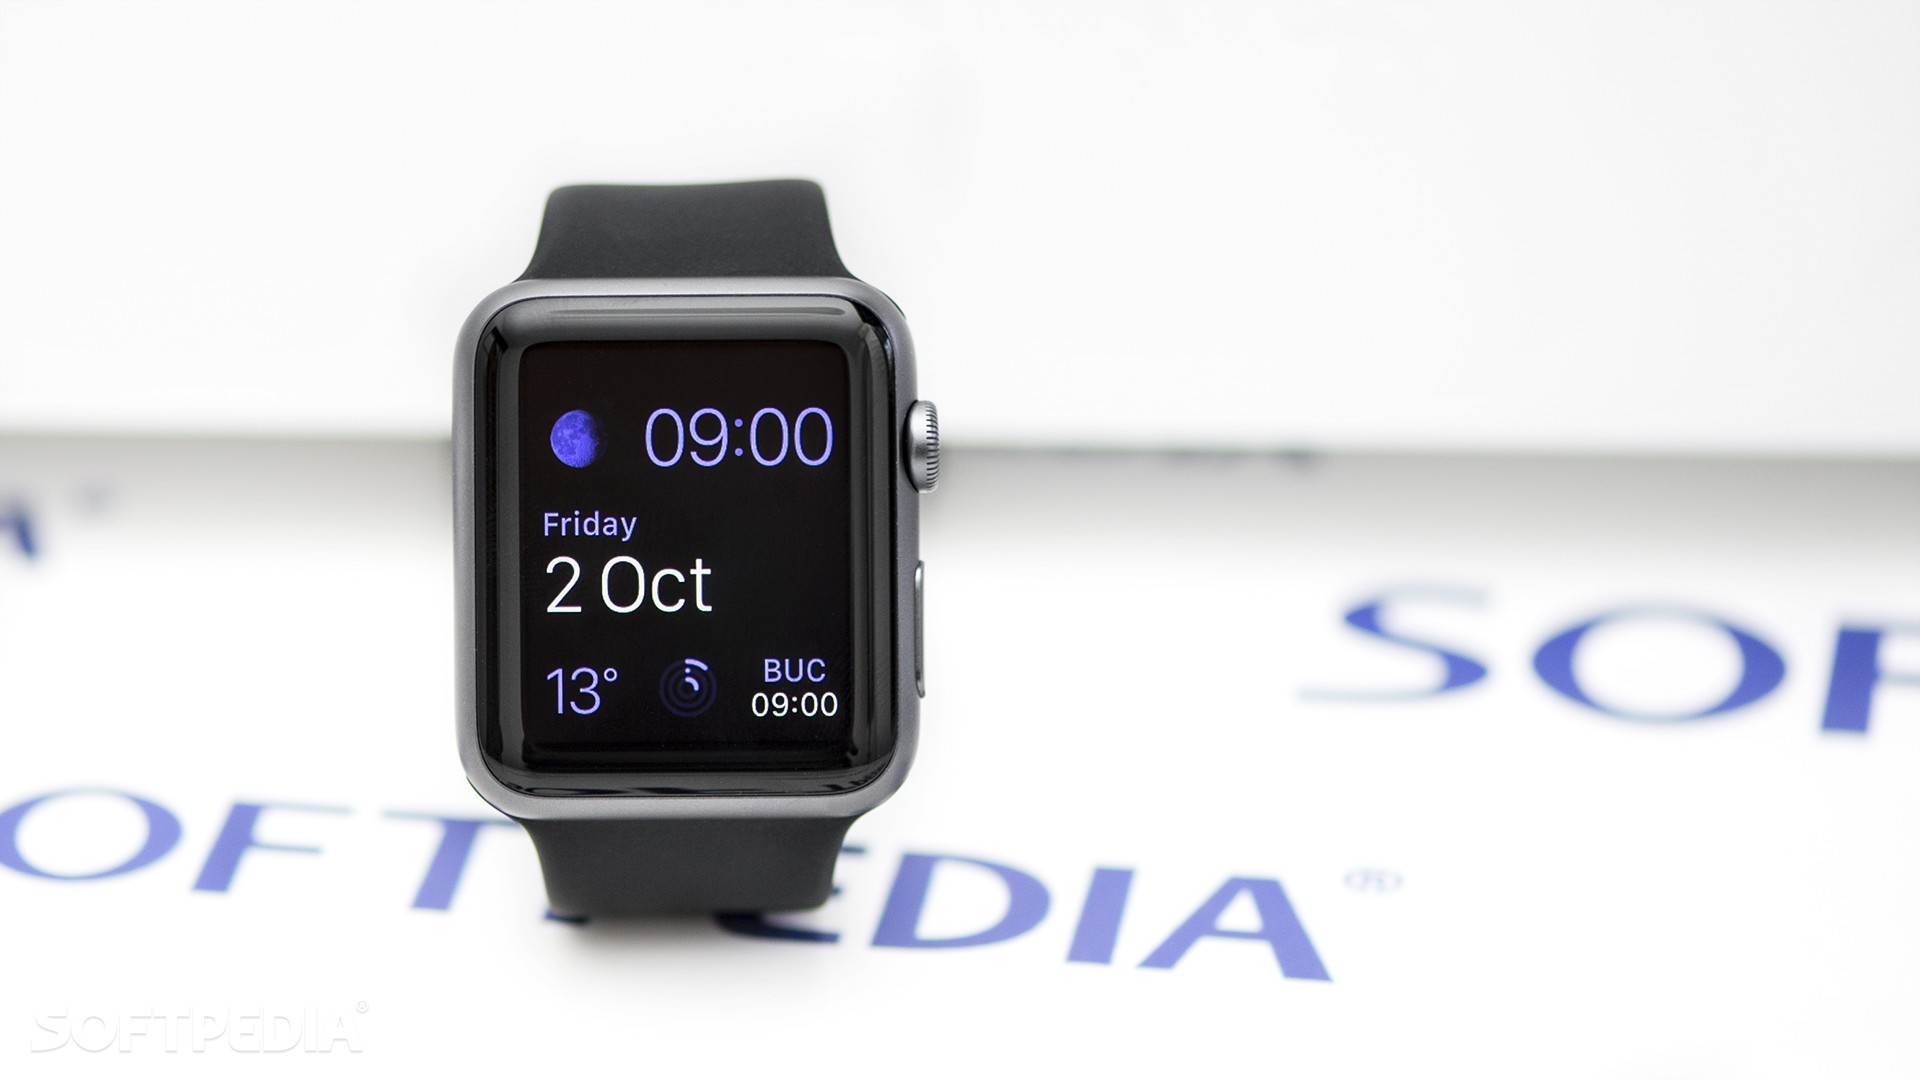 Apple Watch Update Coming in March, Second Generation to